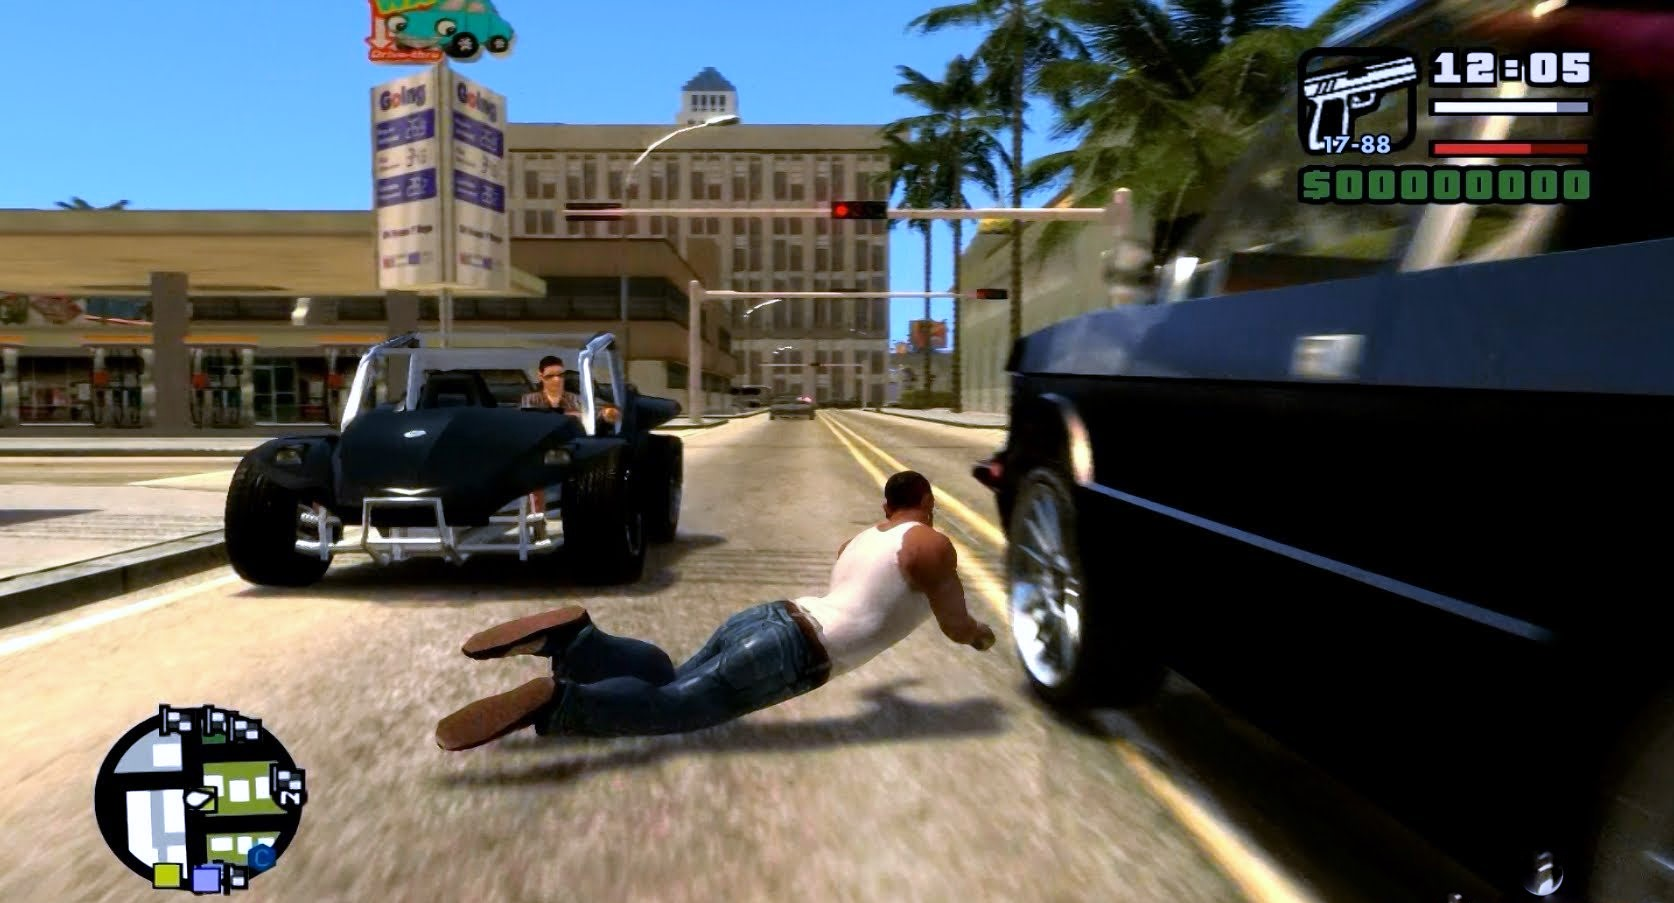 GTA San Andreas Free Download For Windows 10